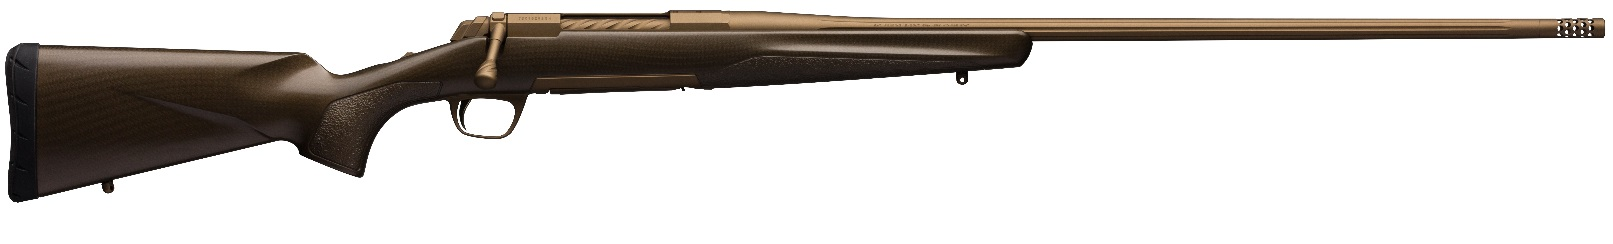 Browning X-Bolt Pro 6mm Creedmoor